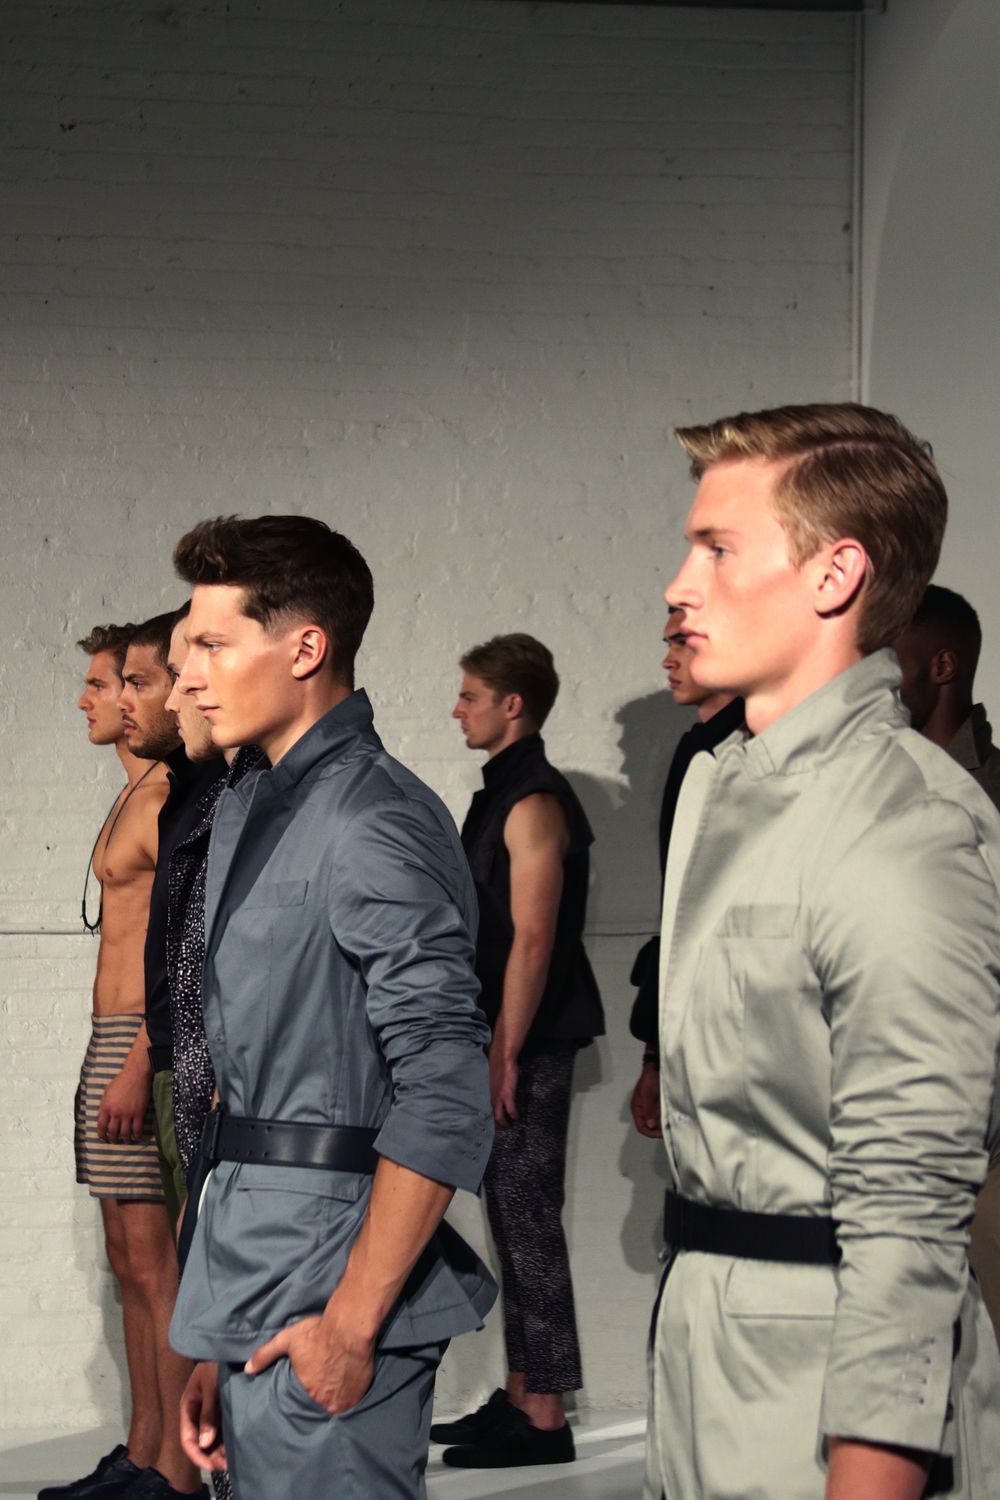 NEW YORK FASHION WEEK MENS #NYFWM | CADET | SPRING/SUMMER '16  Featuring: CADET @cadetusa // Key Hair: Nathan Nguyen @nathanlibra for Oribe Hair Care @oribe // Hair Team: Oribe Hair Care Team | Umbrella Salon @umbrellasalon @industriasuperstudio Photo by: Anthony Deeying